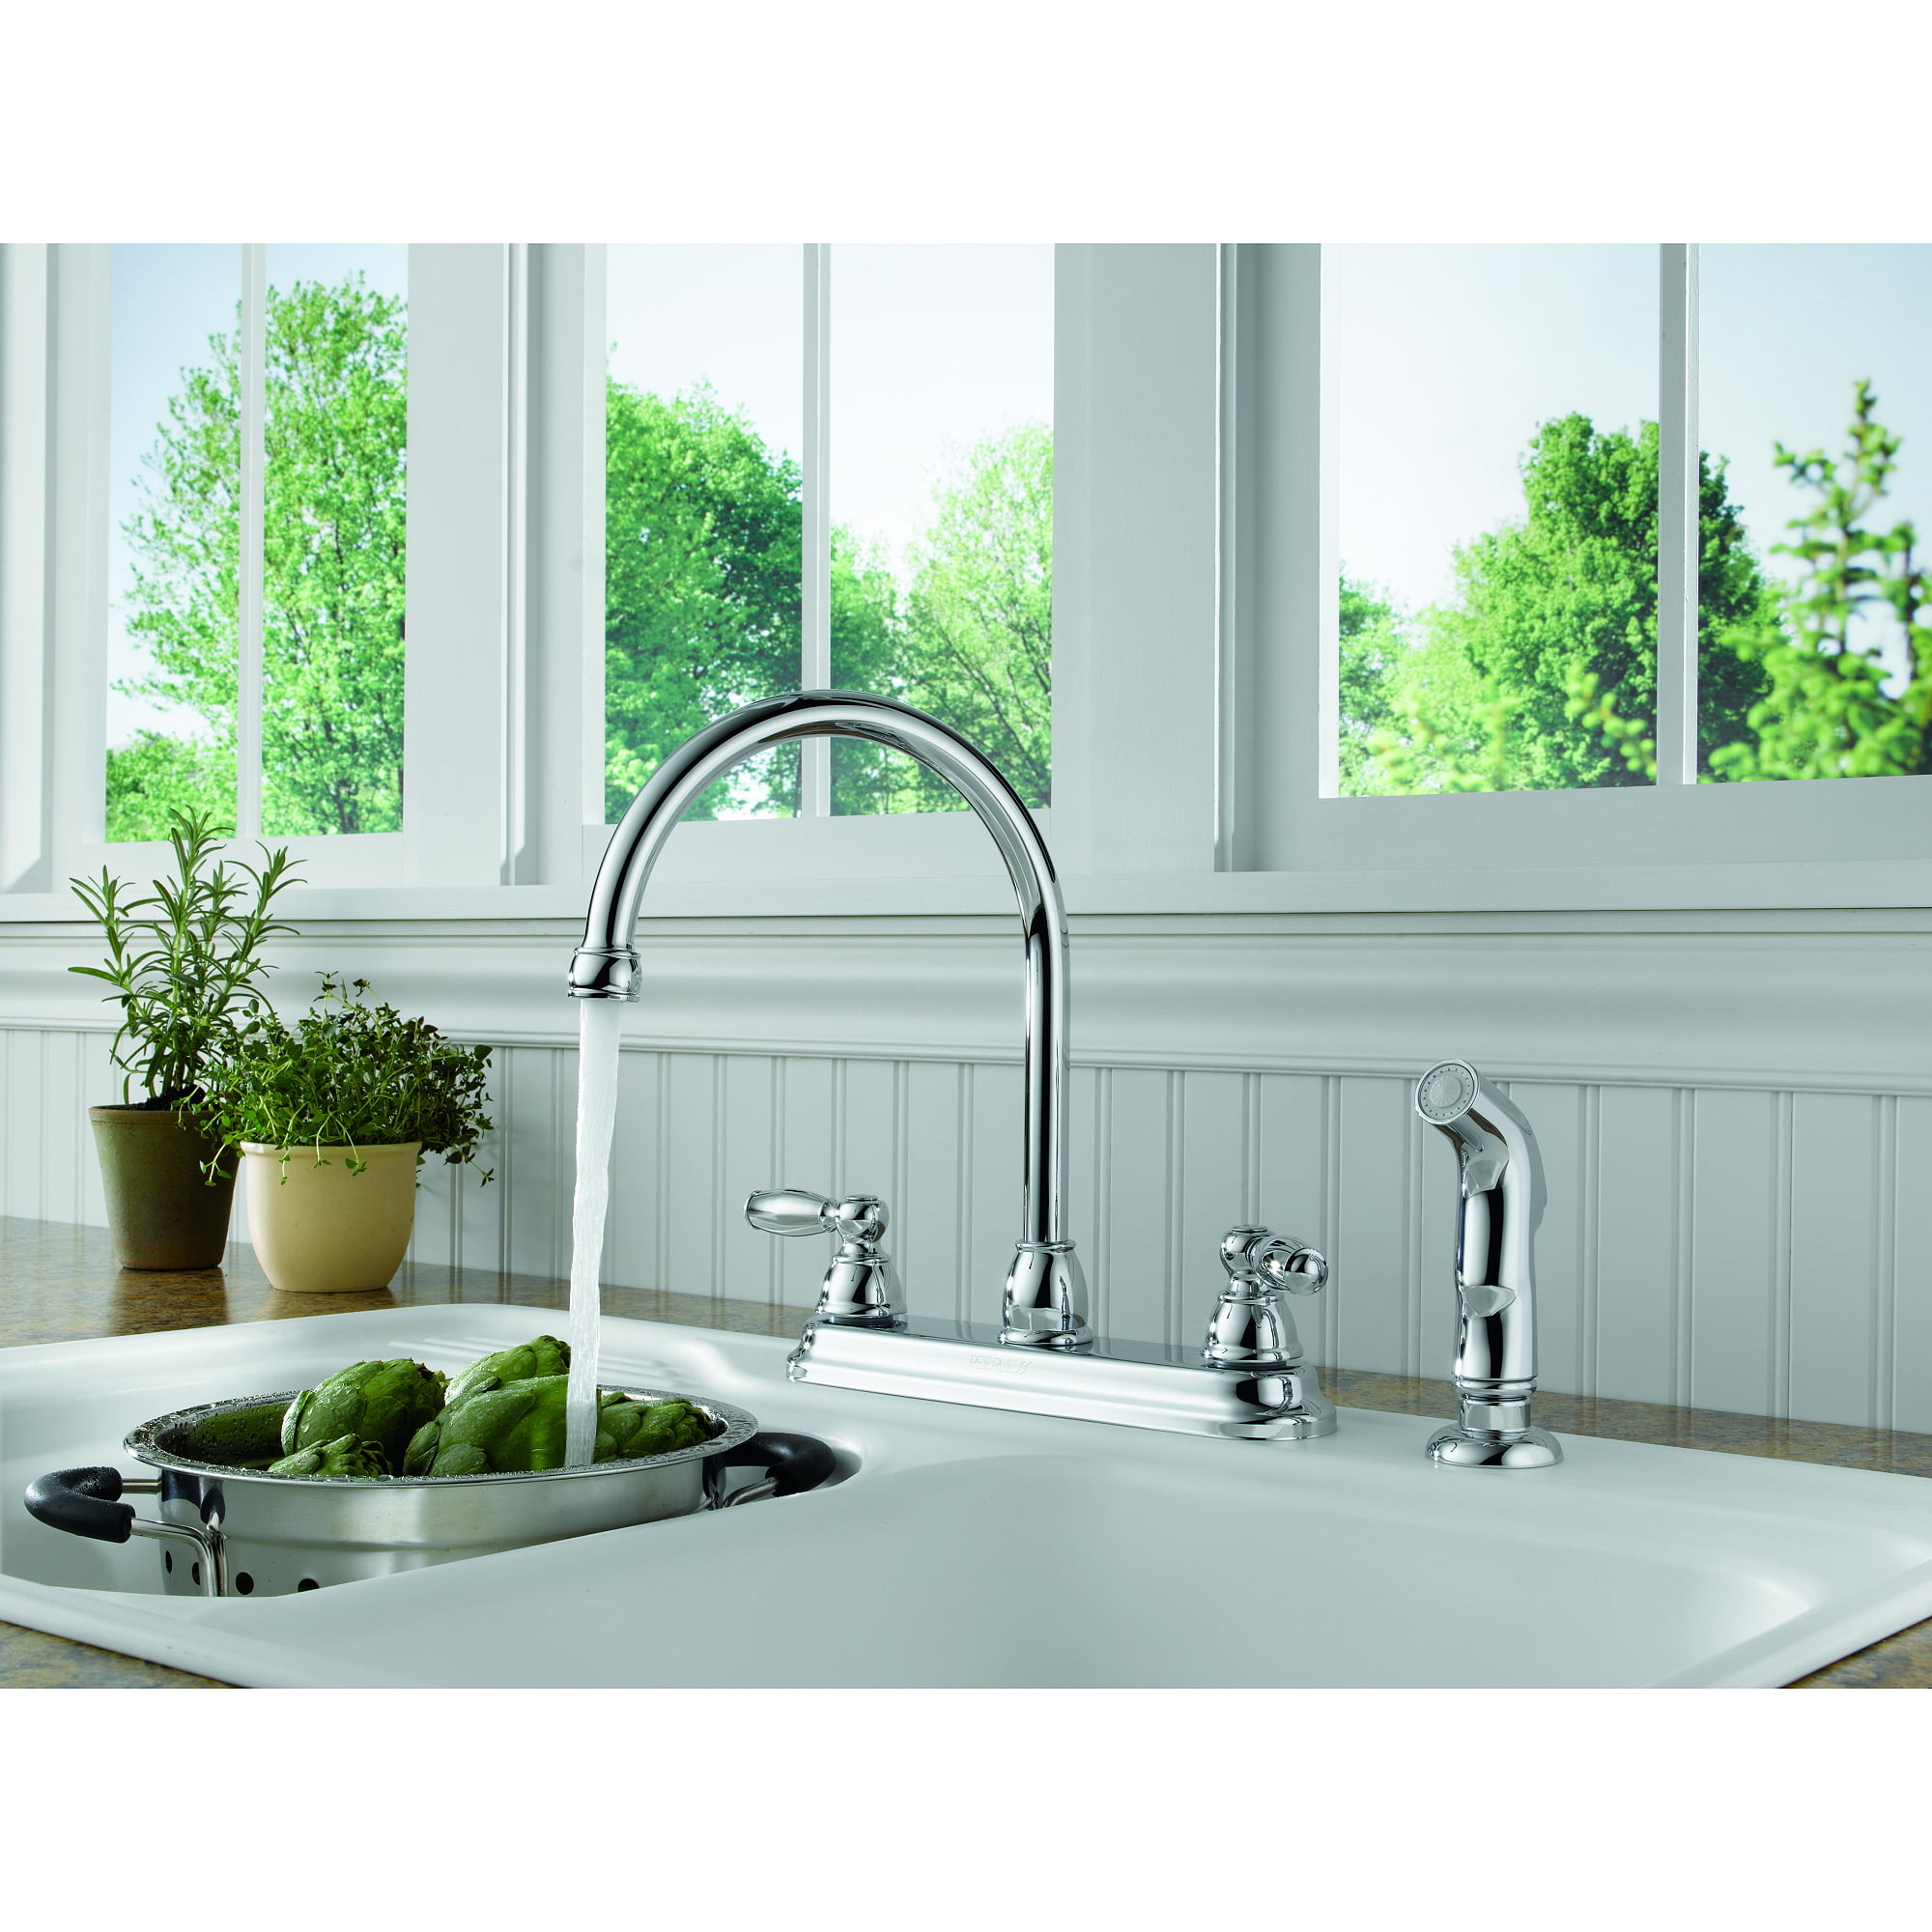 Peerless Two Handle Kitchen Faucet With Side Sprayer, Chrome, #P299575LF W    Walmart.com